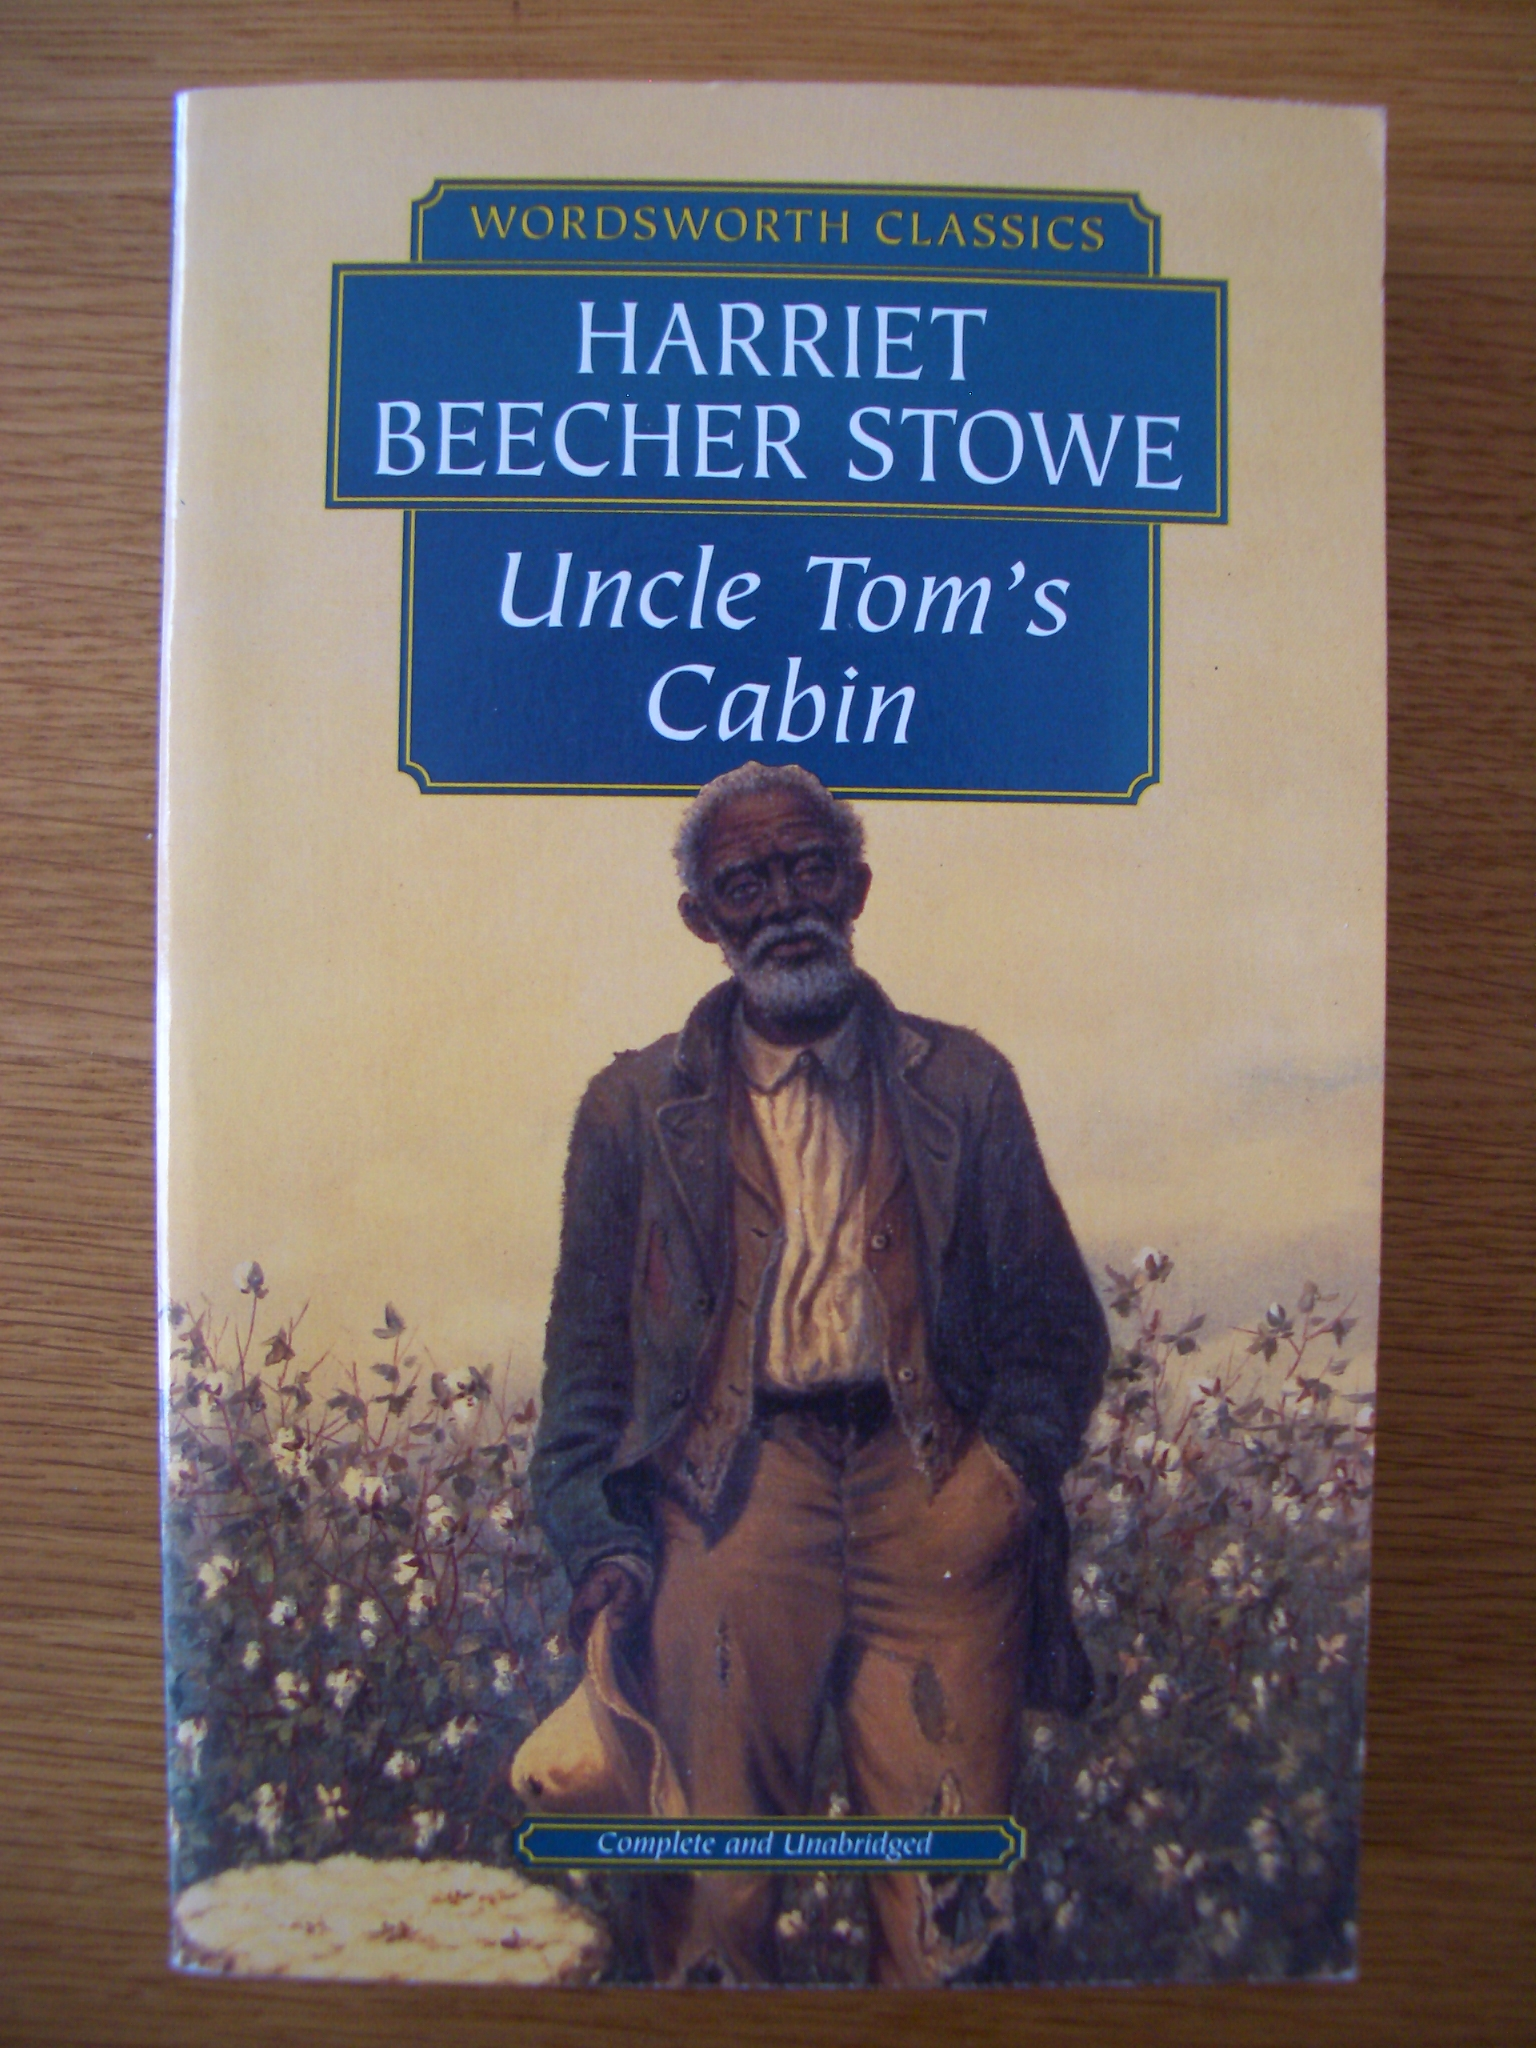 an analysis of the character of uncle tom in the novel uncle toms cabin